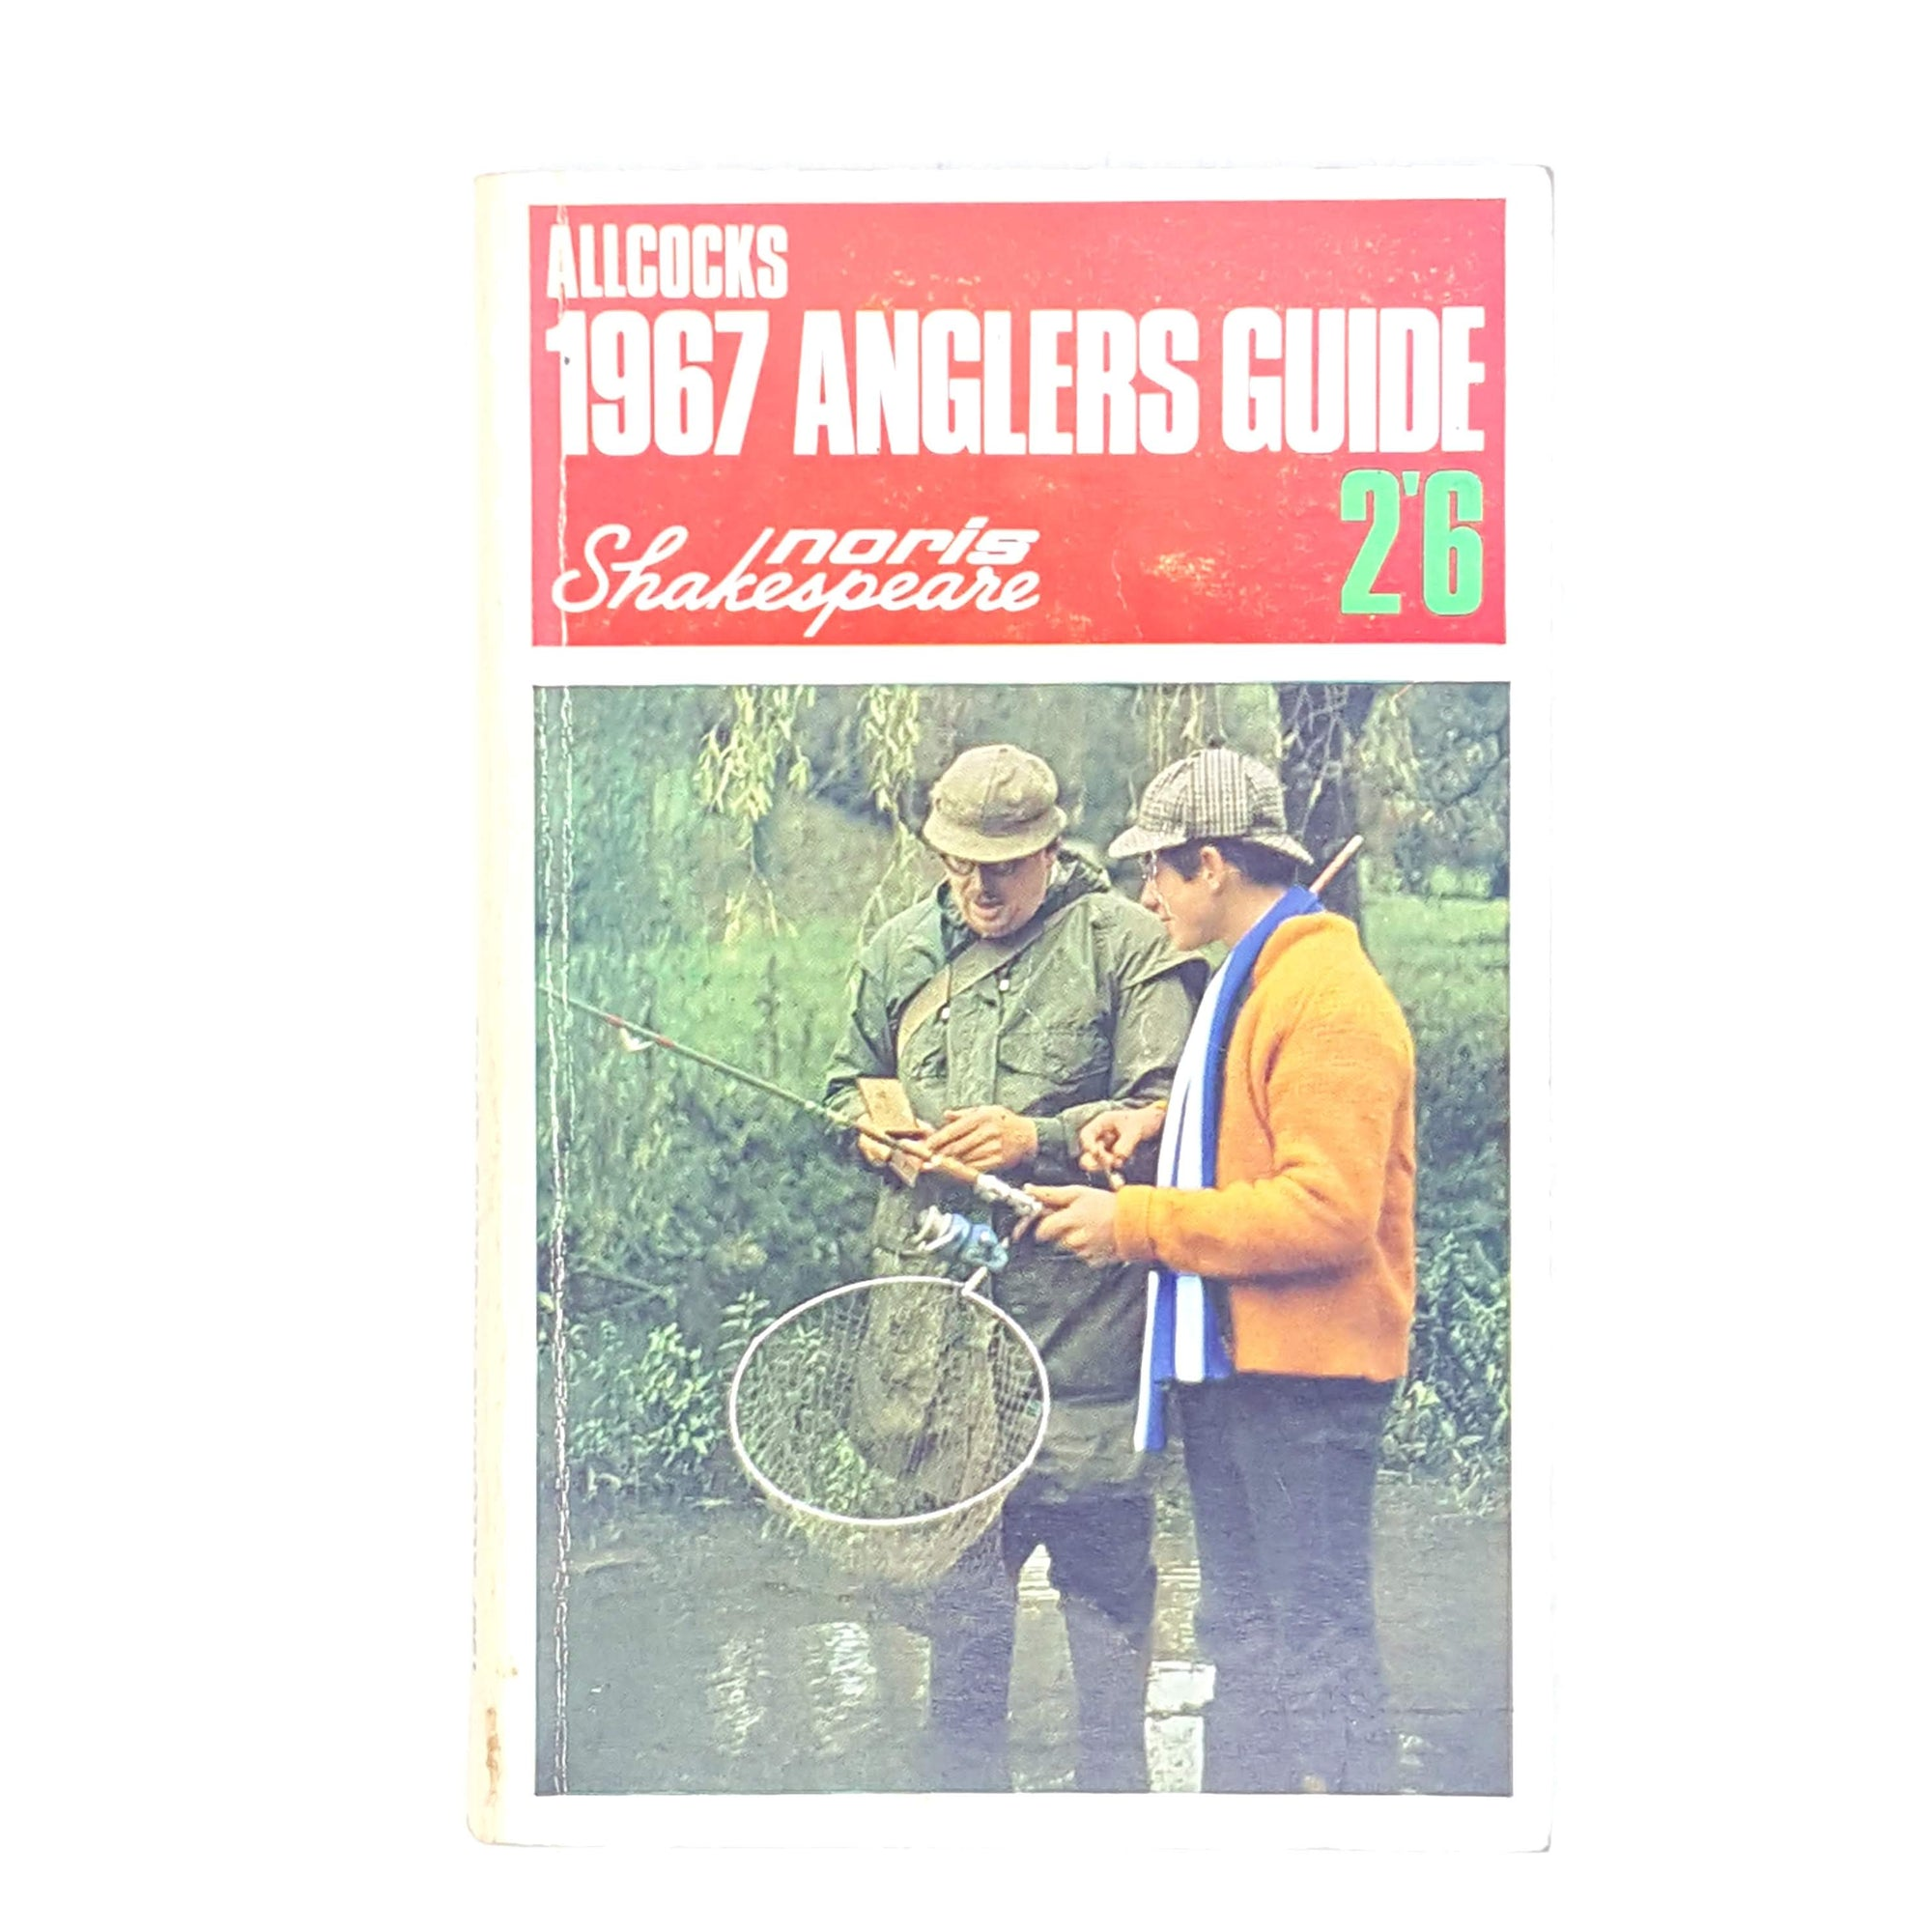 Allcocks Angler's Guide 1967